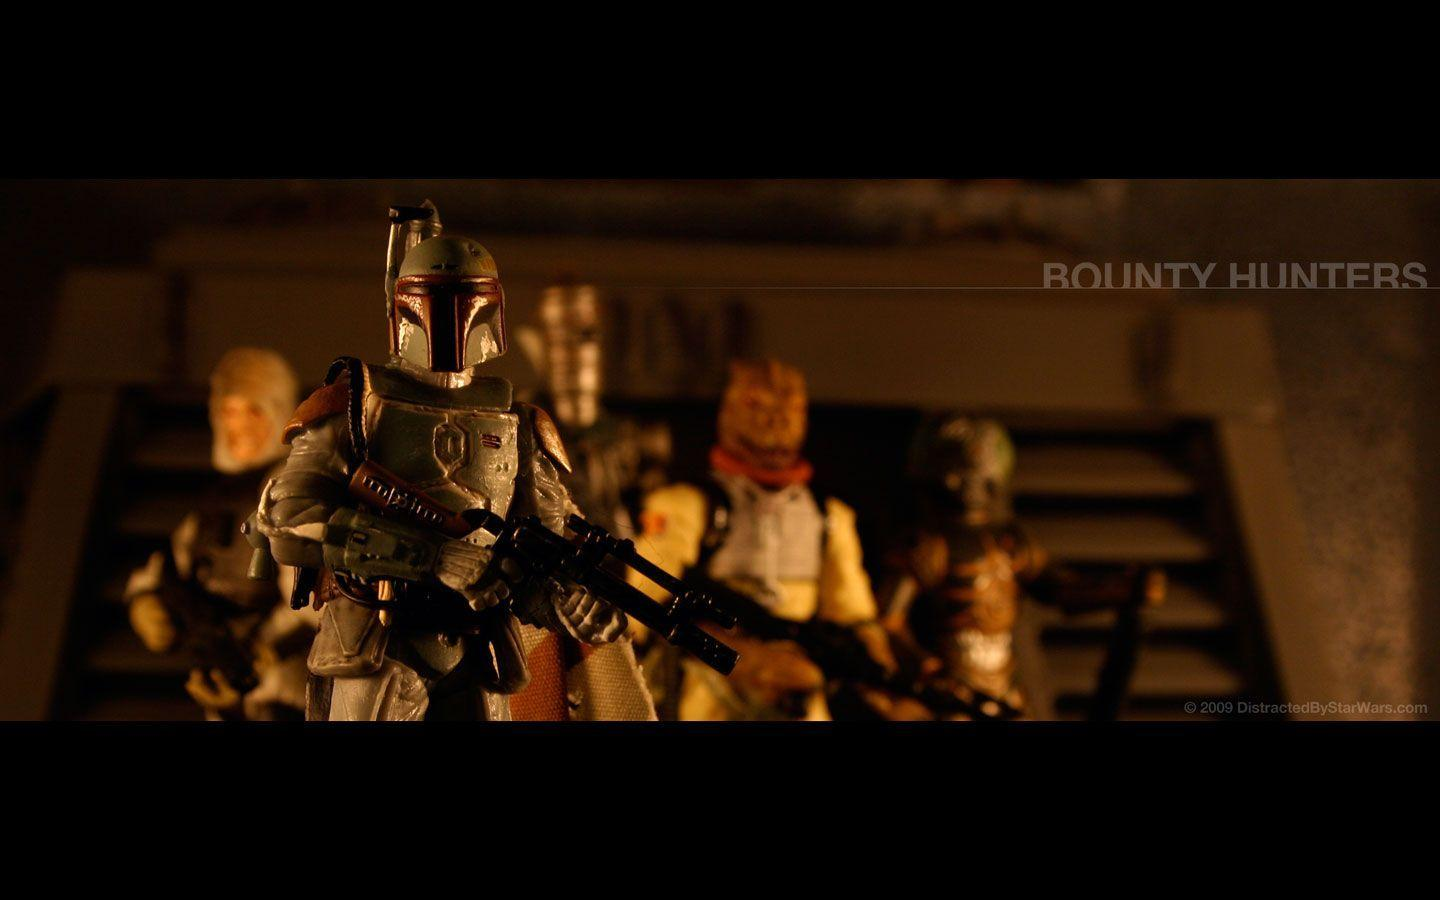 Star Wars Bounty Hunter Wallpapers Wallpaper Cave